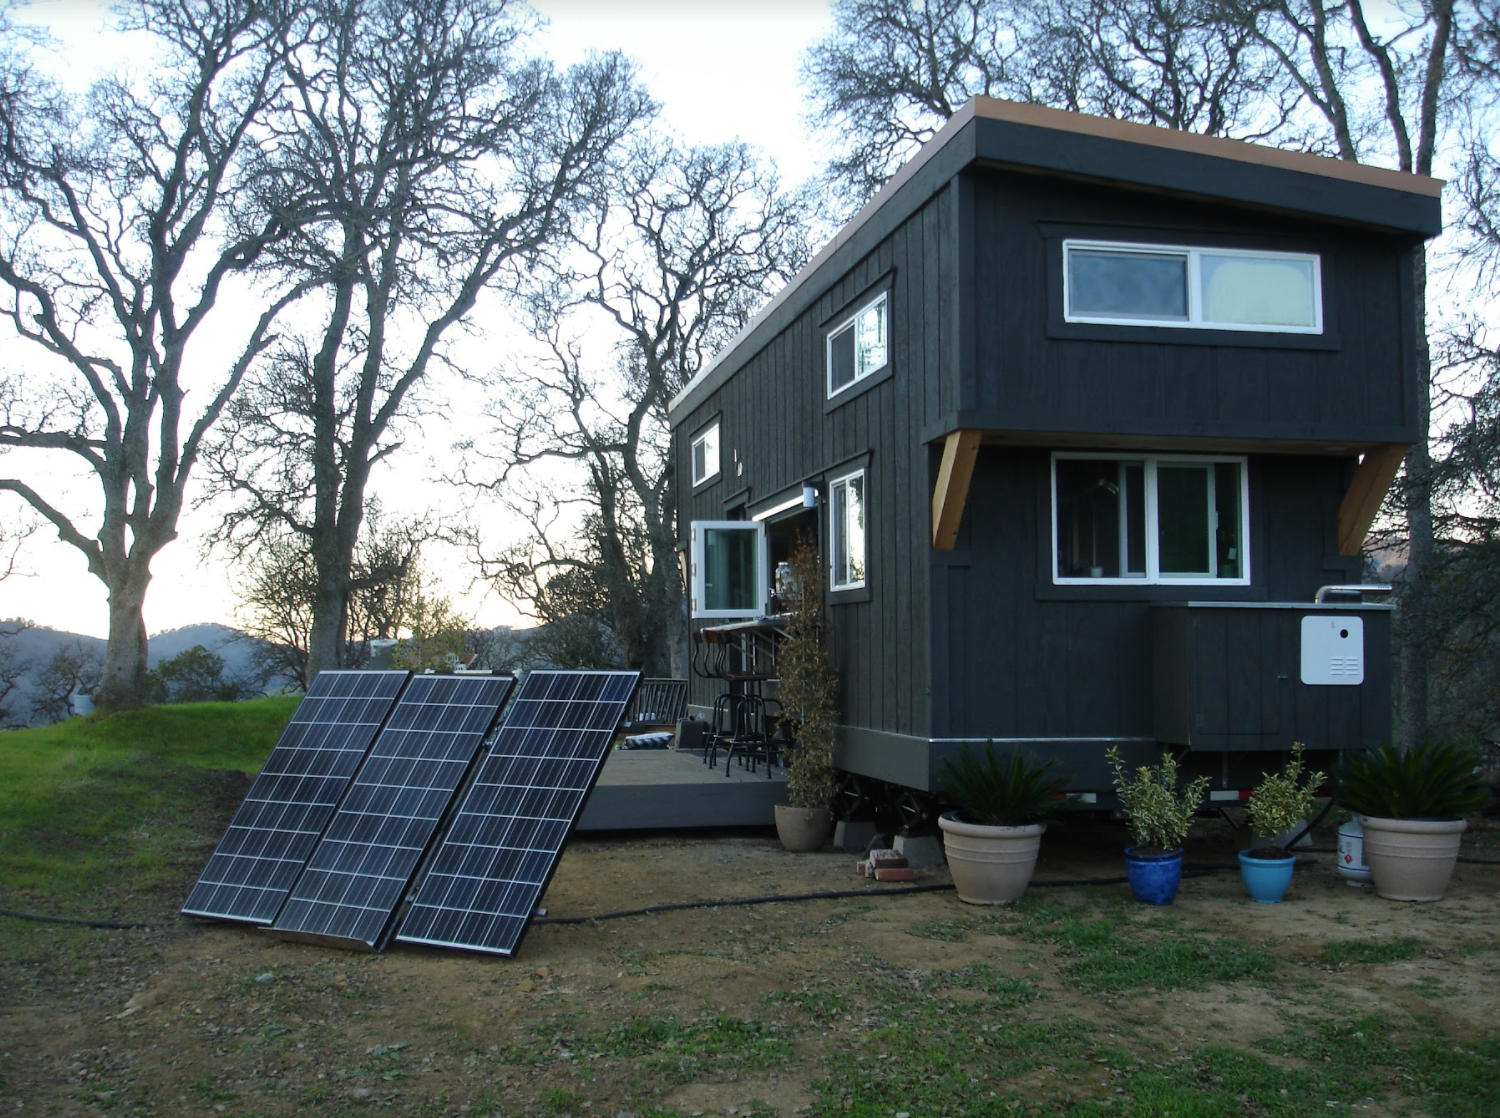 solar powered tiny house. Save Energy And Maximize The Brightness In Your Tiny House With Solar Panels! Powered